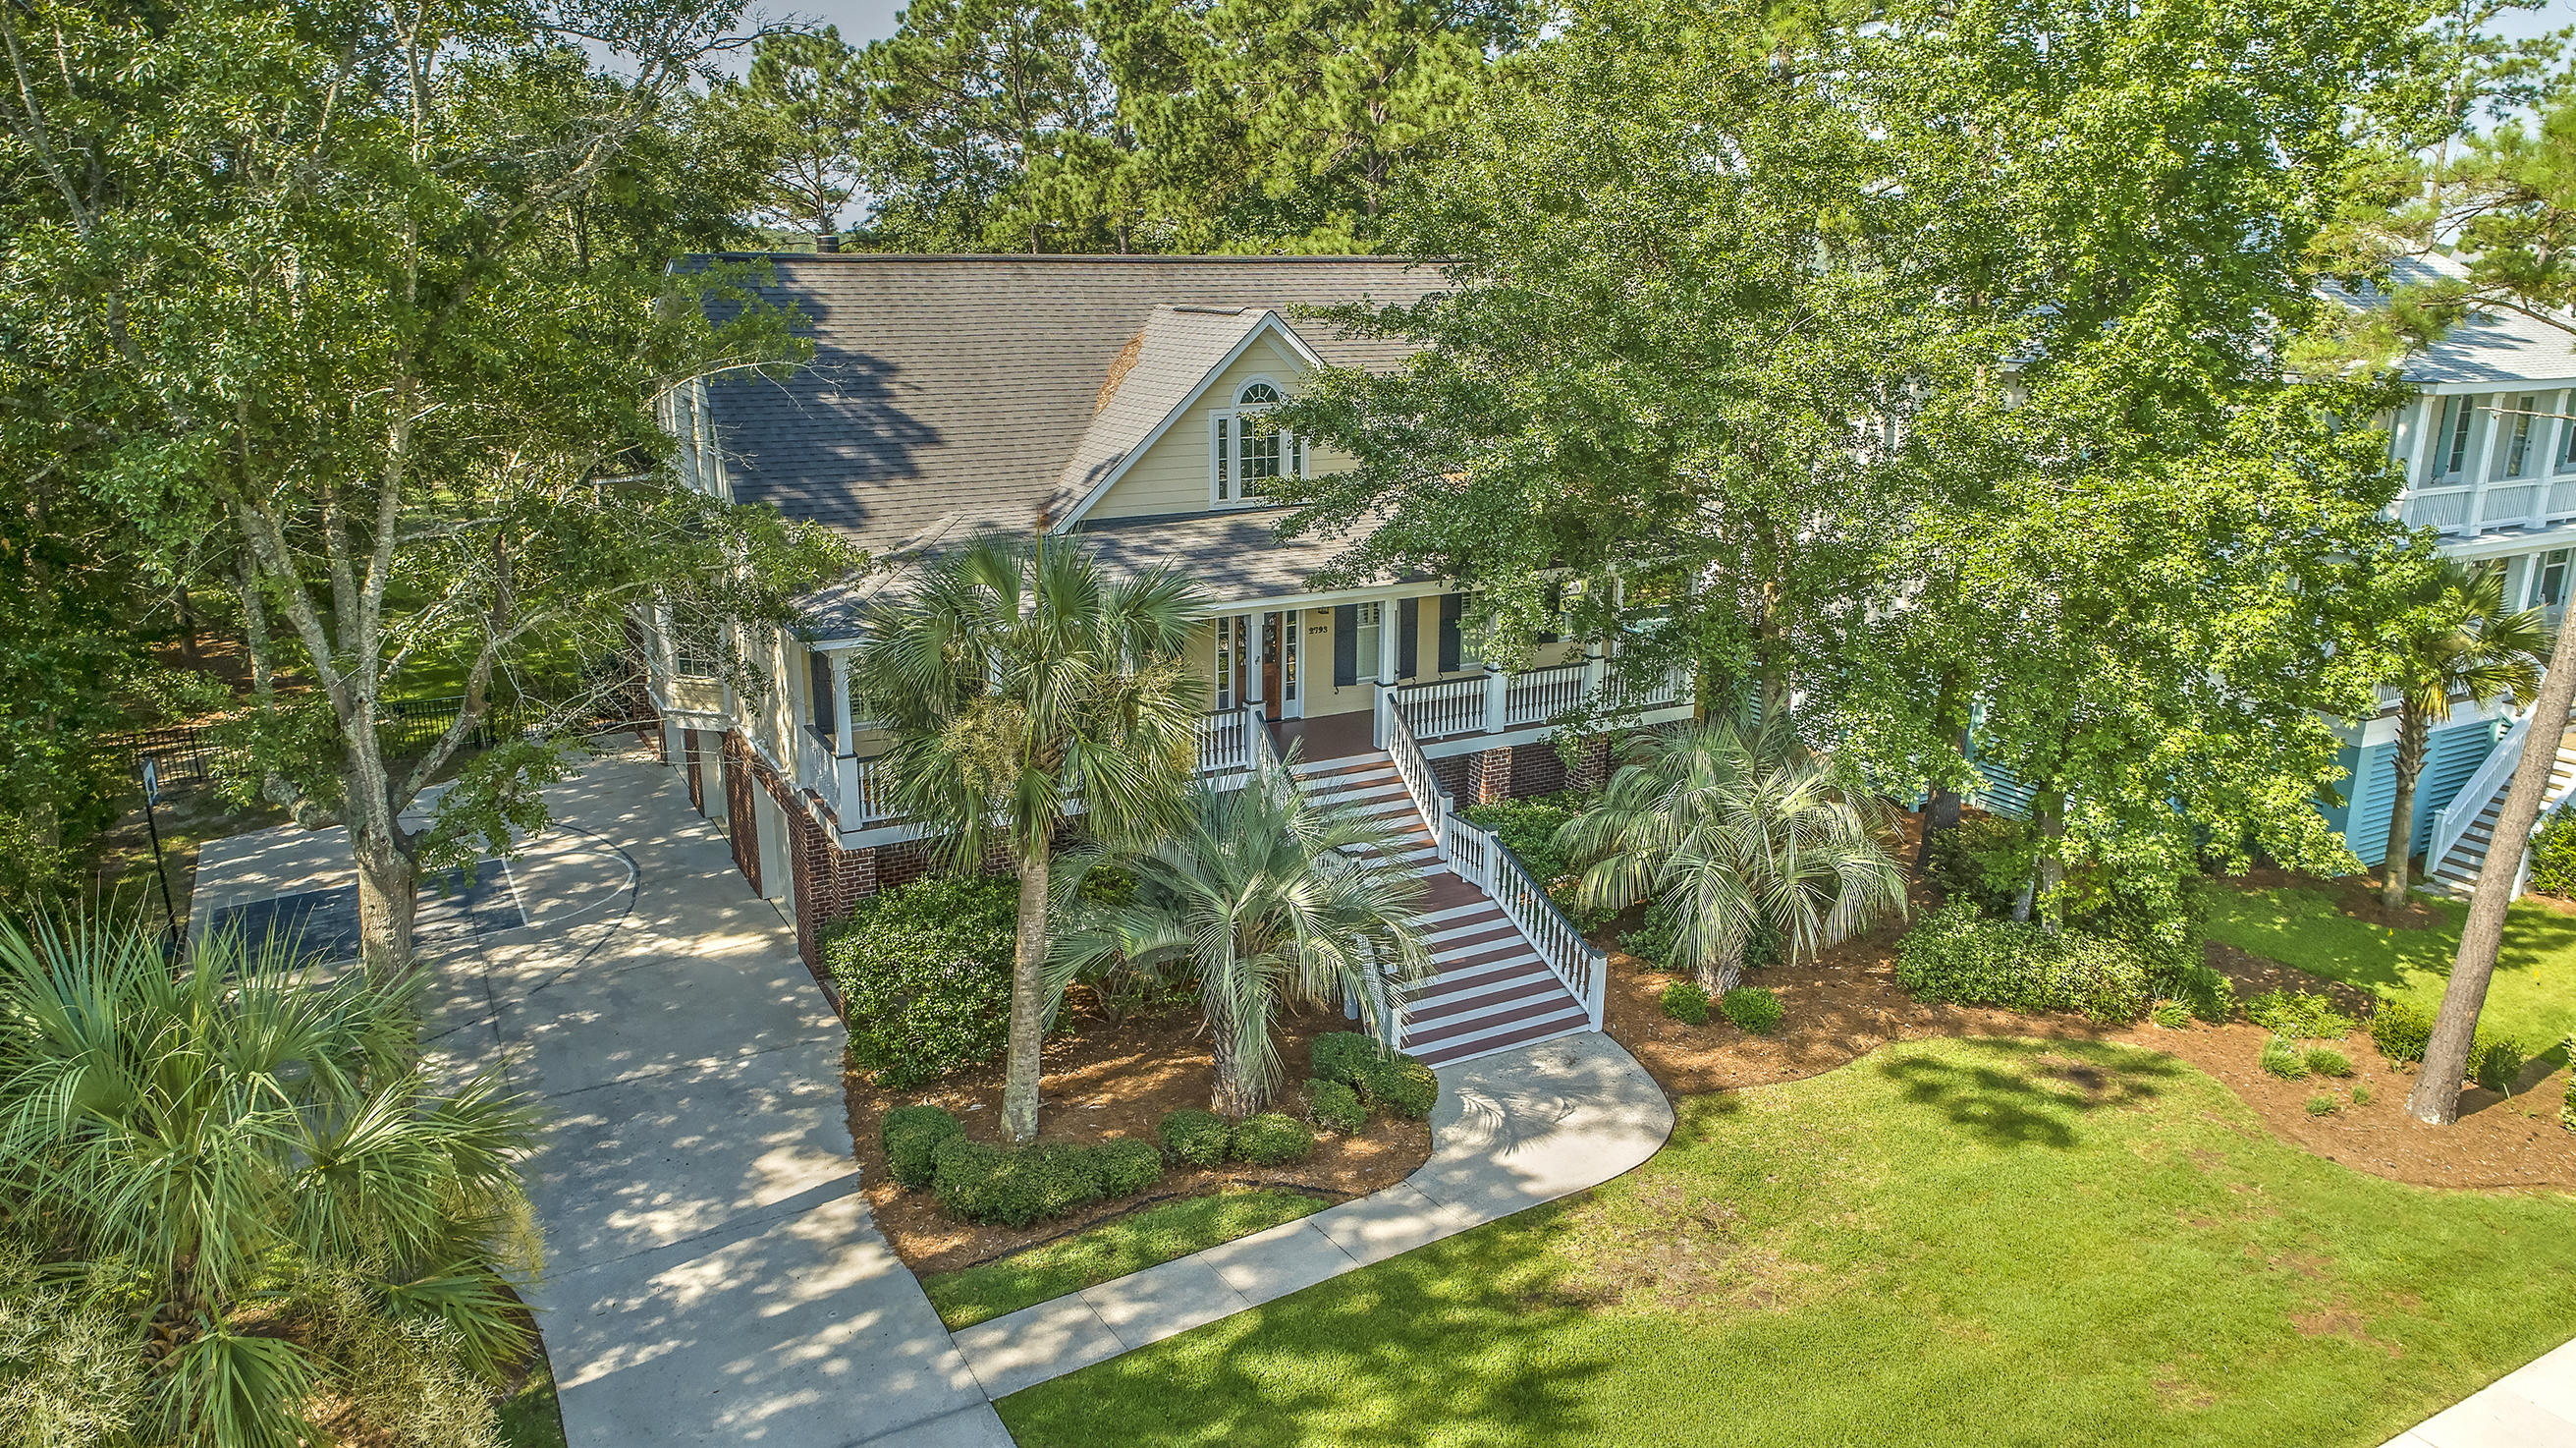 Rivertowne Country Club Homes For Sale - 2793 Parkers Landing, Mount Pleasant, SC - 85